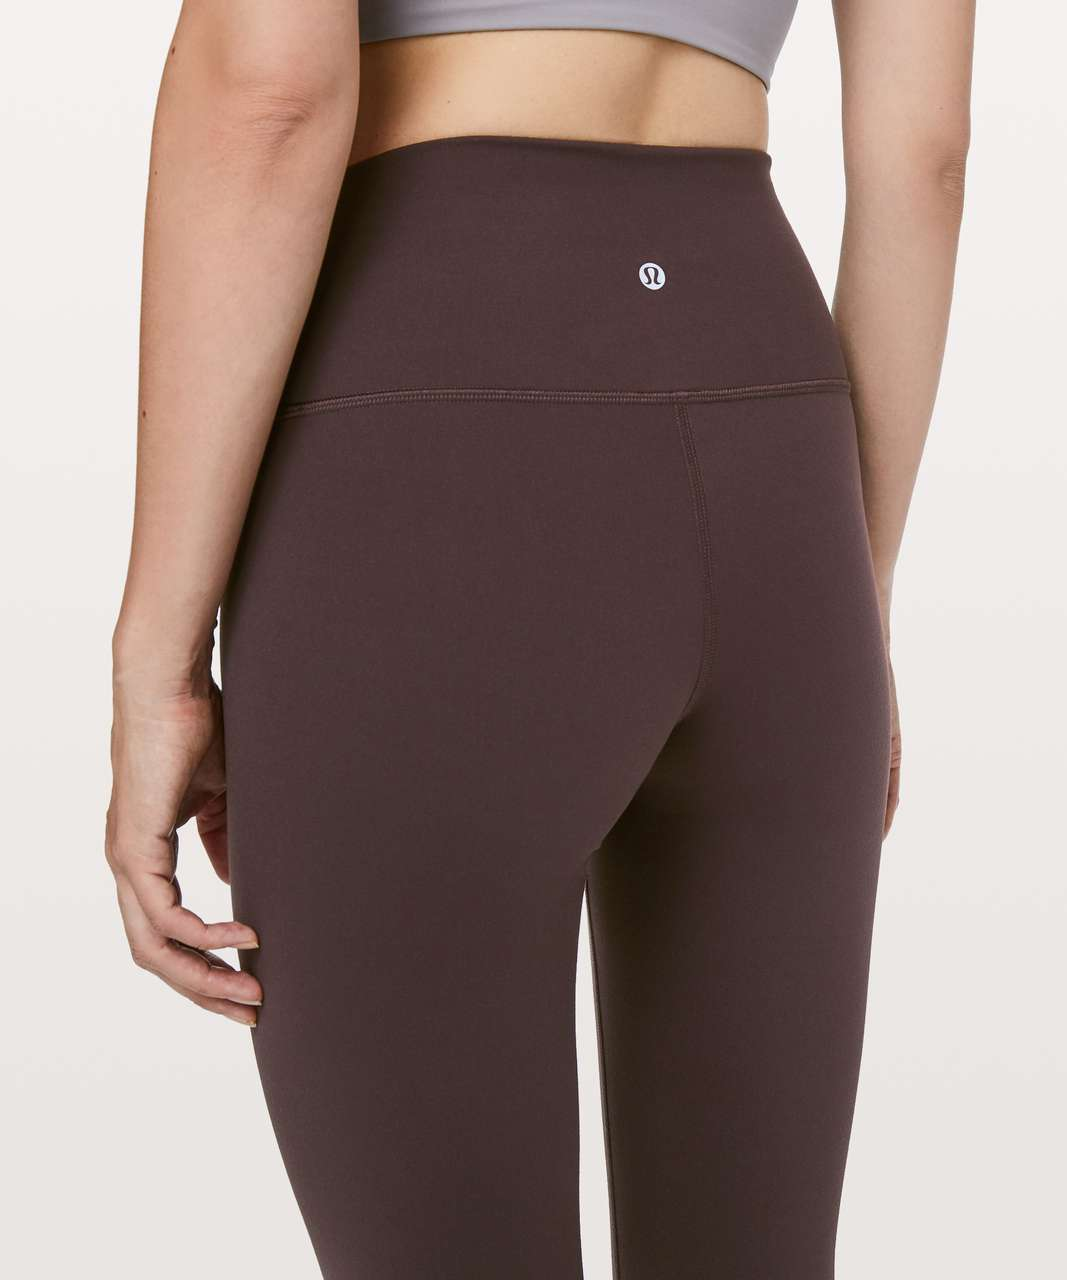 "Lululemon Wunder Under Hi-Rise Tight *28"" - Black Satin"